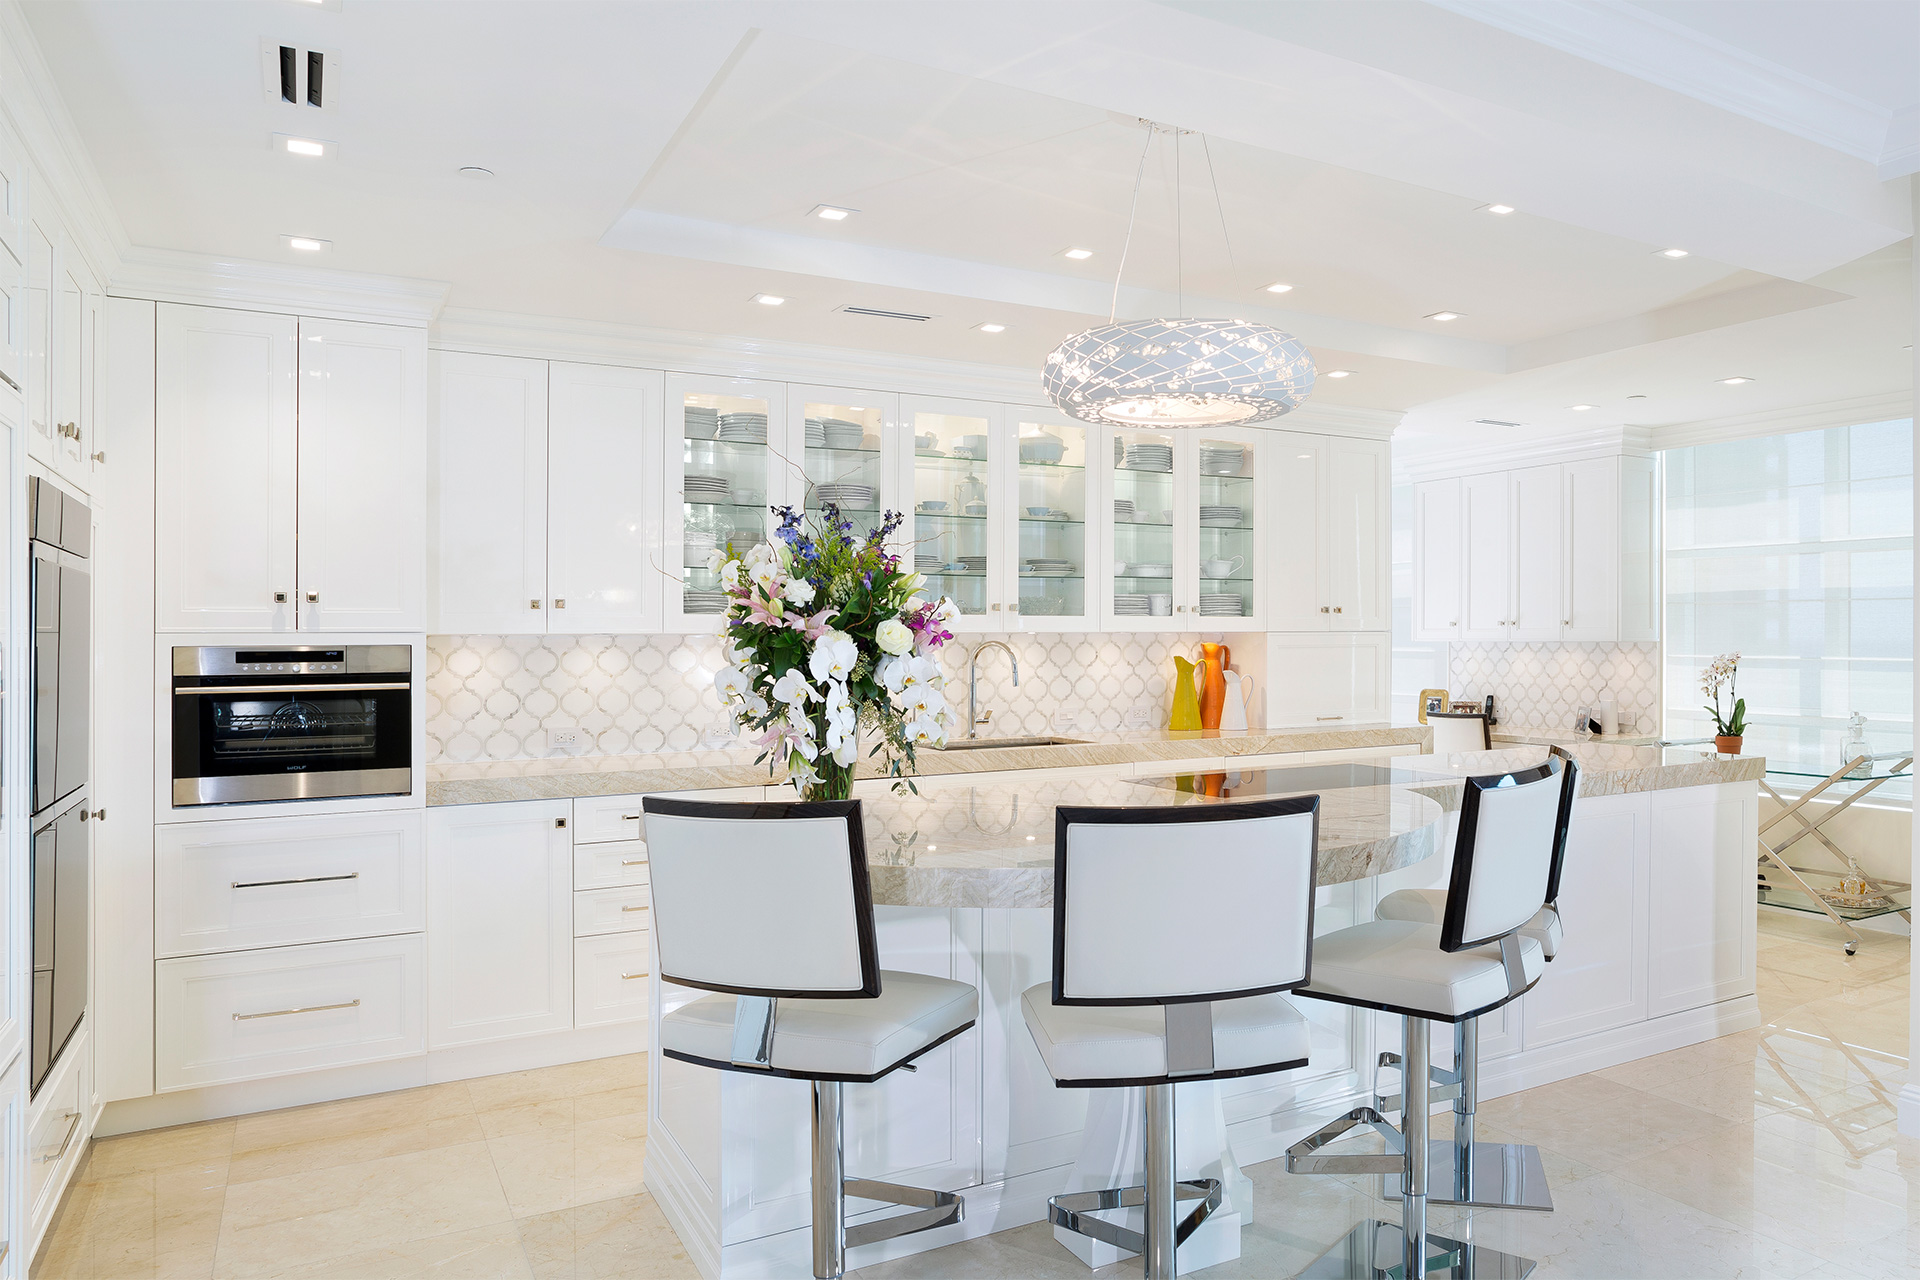 Beach Style Kitchen Cabinets Transitional Kitchens The Place For Kitchens And Baths